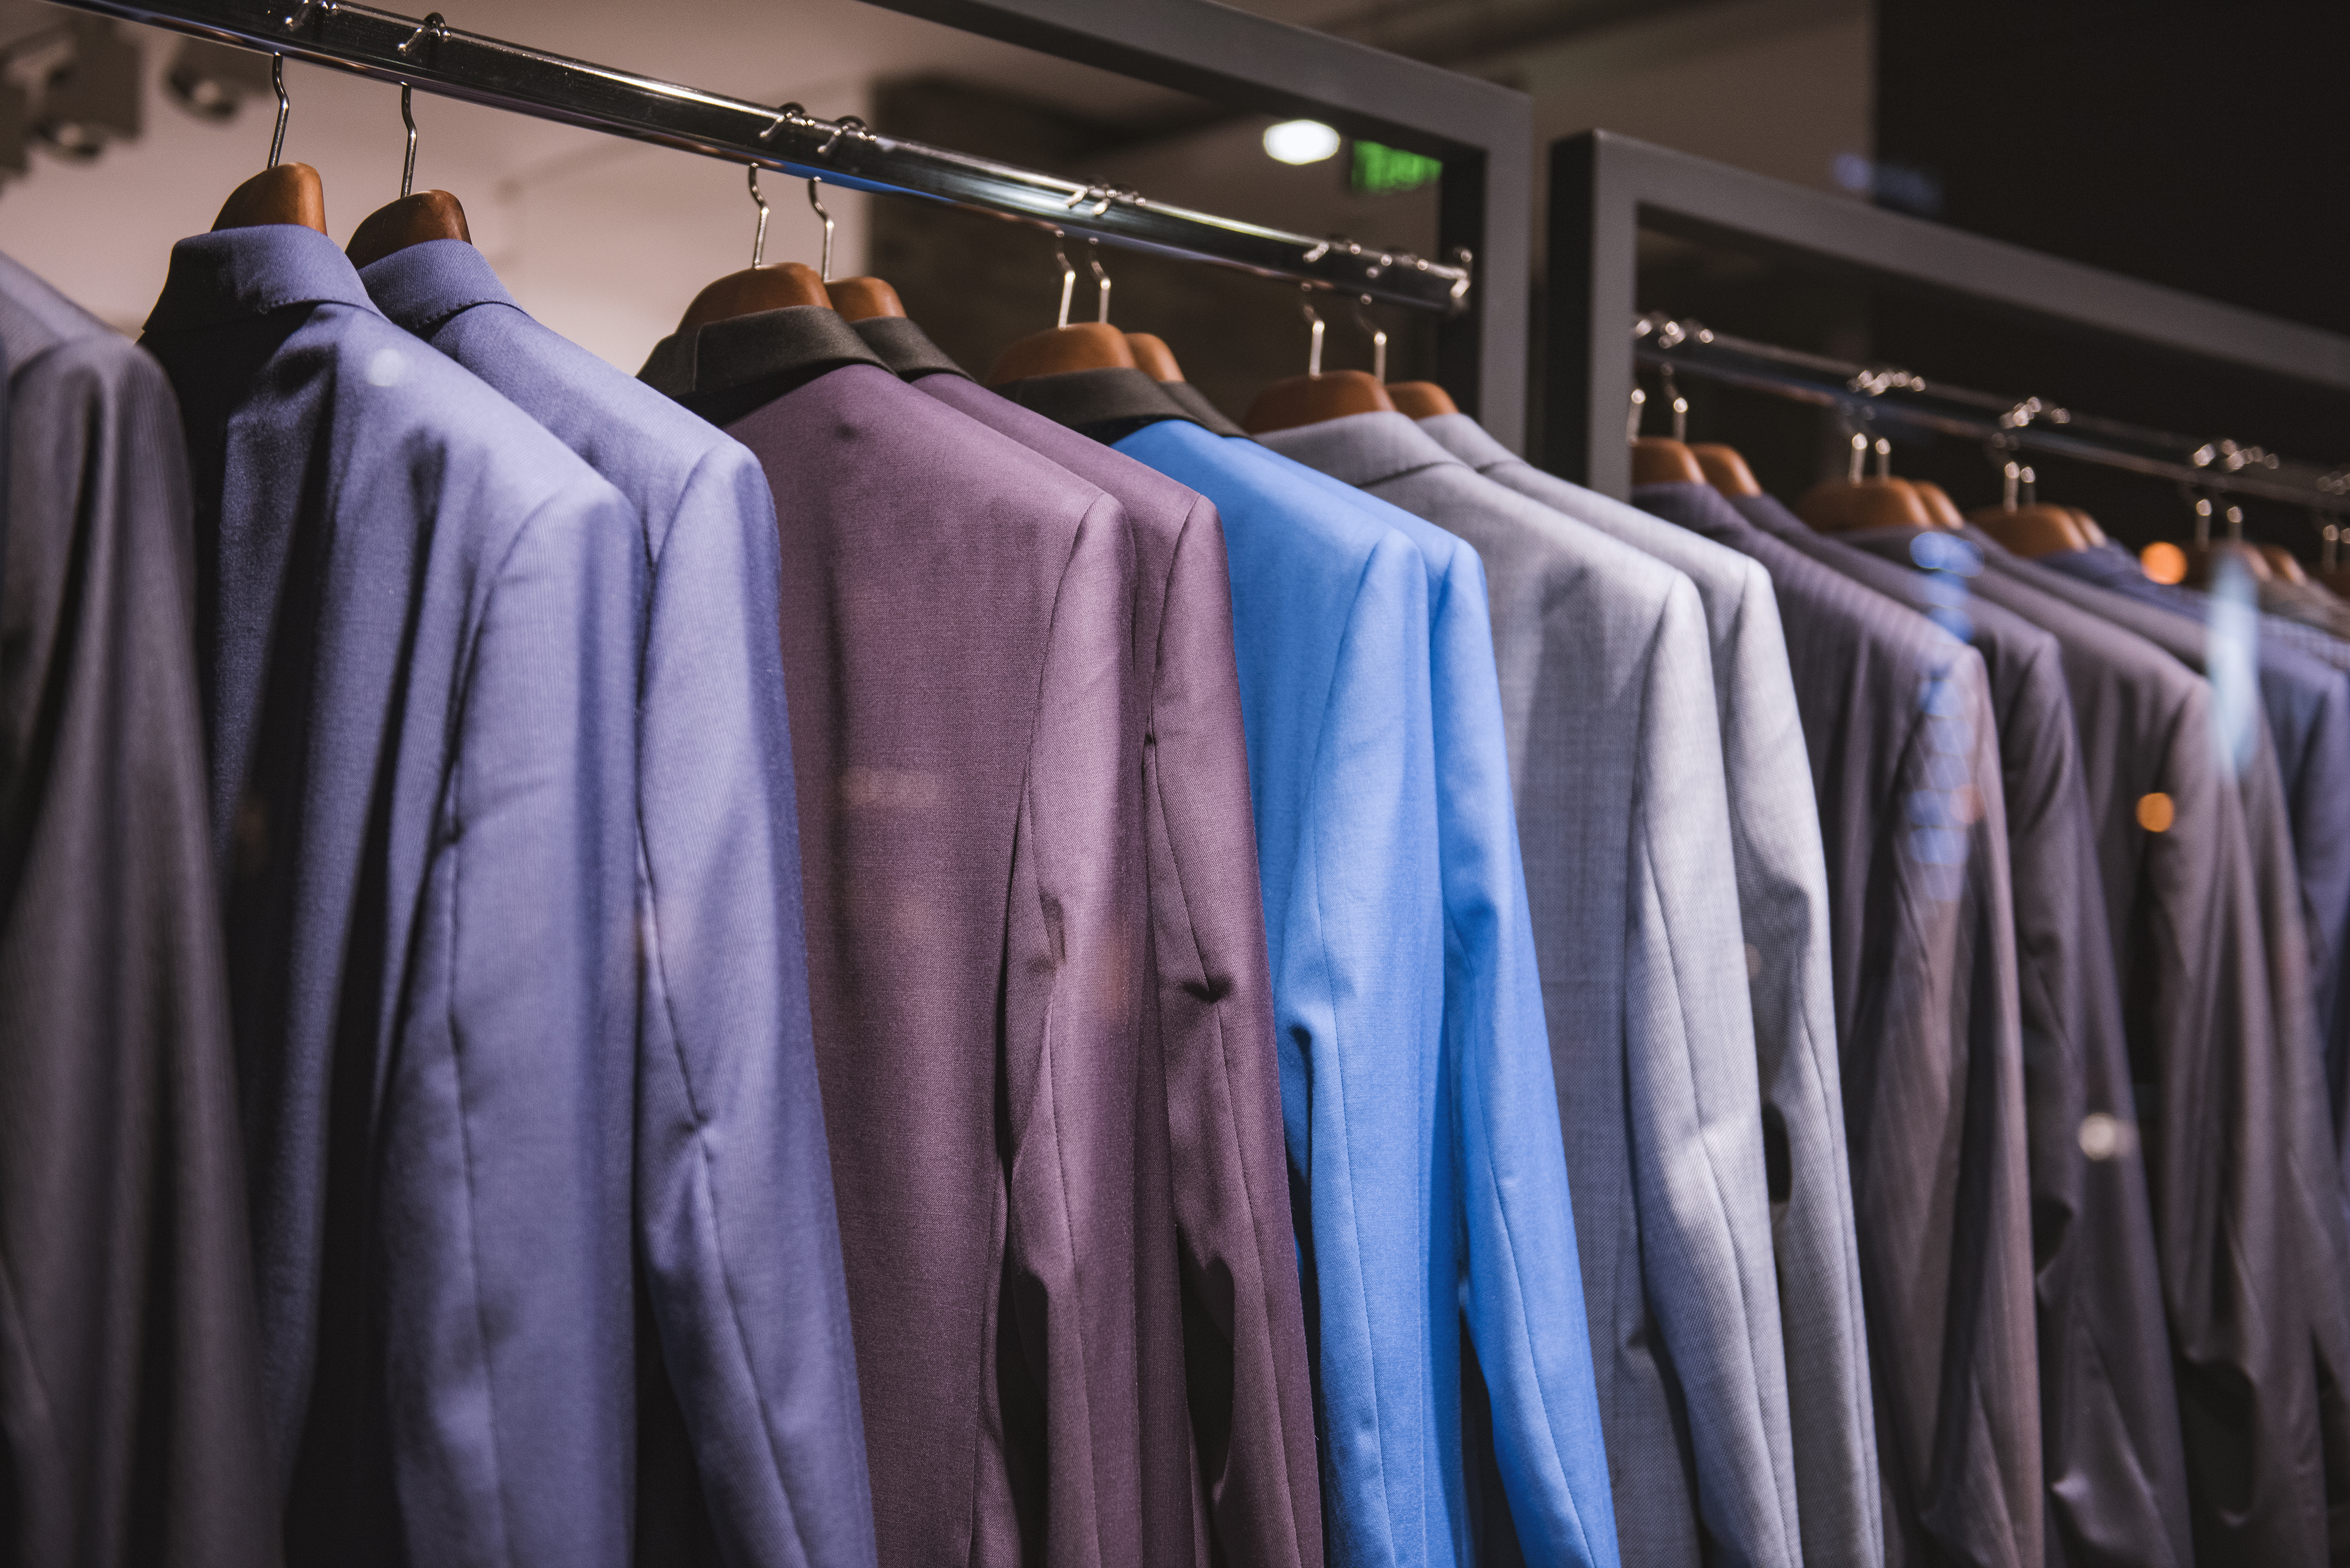 Rack of men's suits in a store